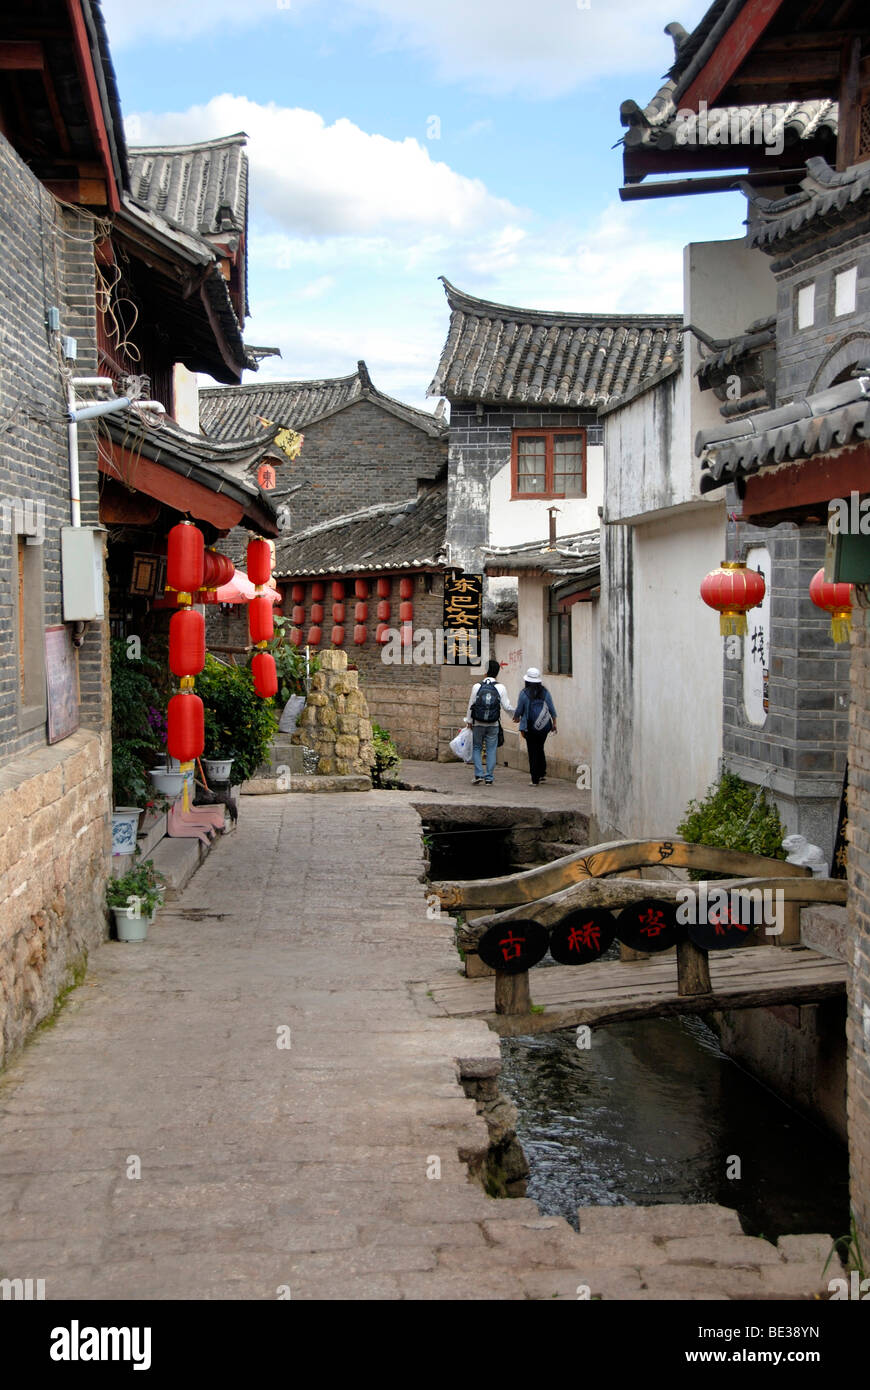 Lane, red lanterns, old town of Lijiang, UNESCO World Heritage Site, Yunnan Province, People's Republic of China, - Stock Image